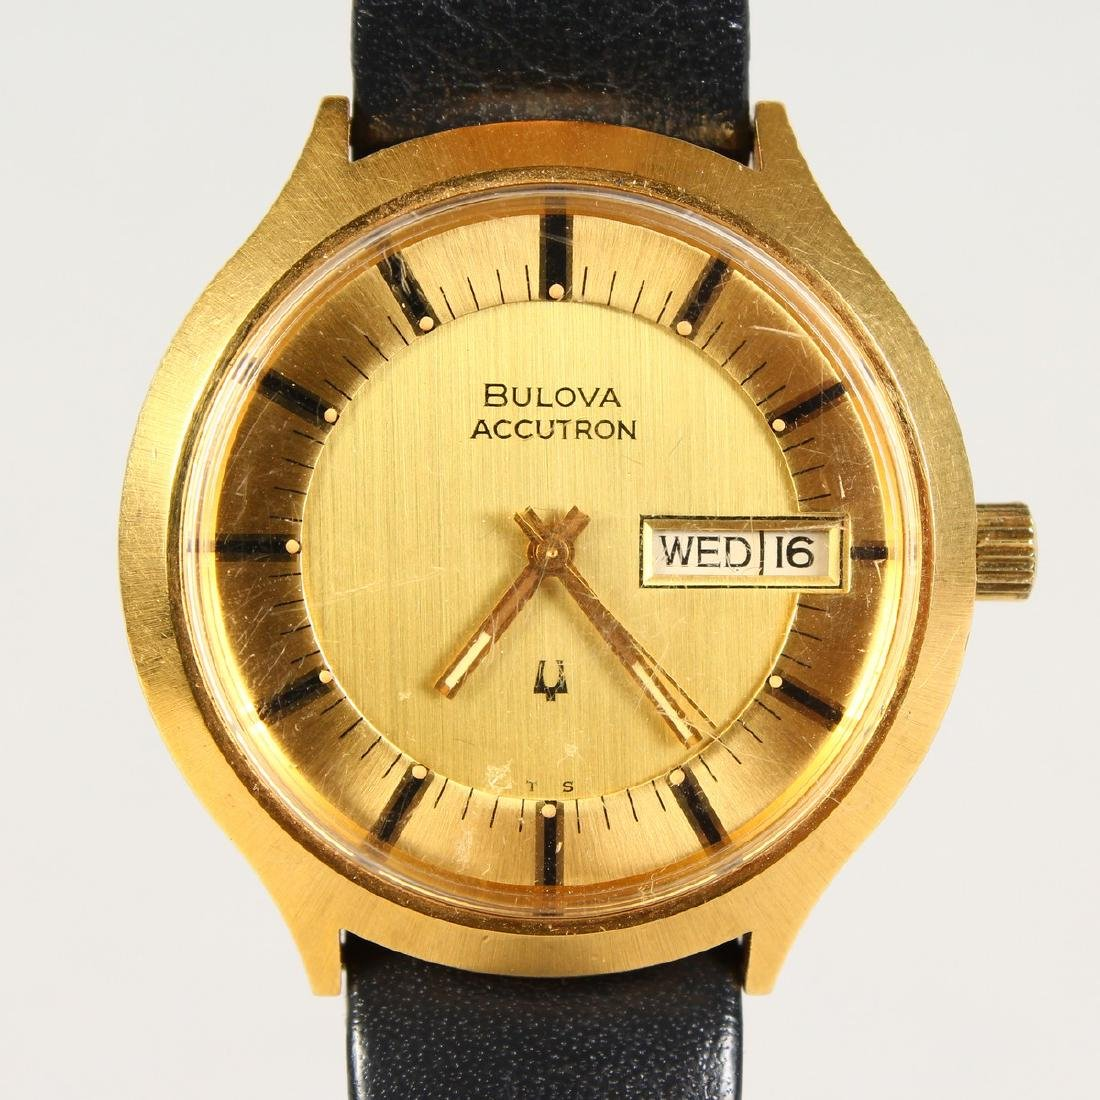 A GENTS VINTAGE BULOVA ACCUTRON WATCH with day-date